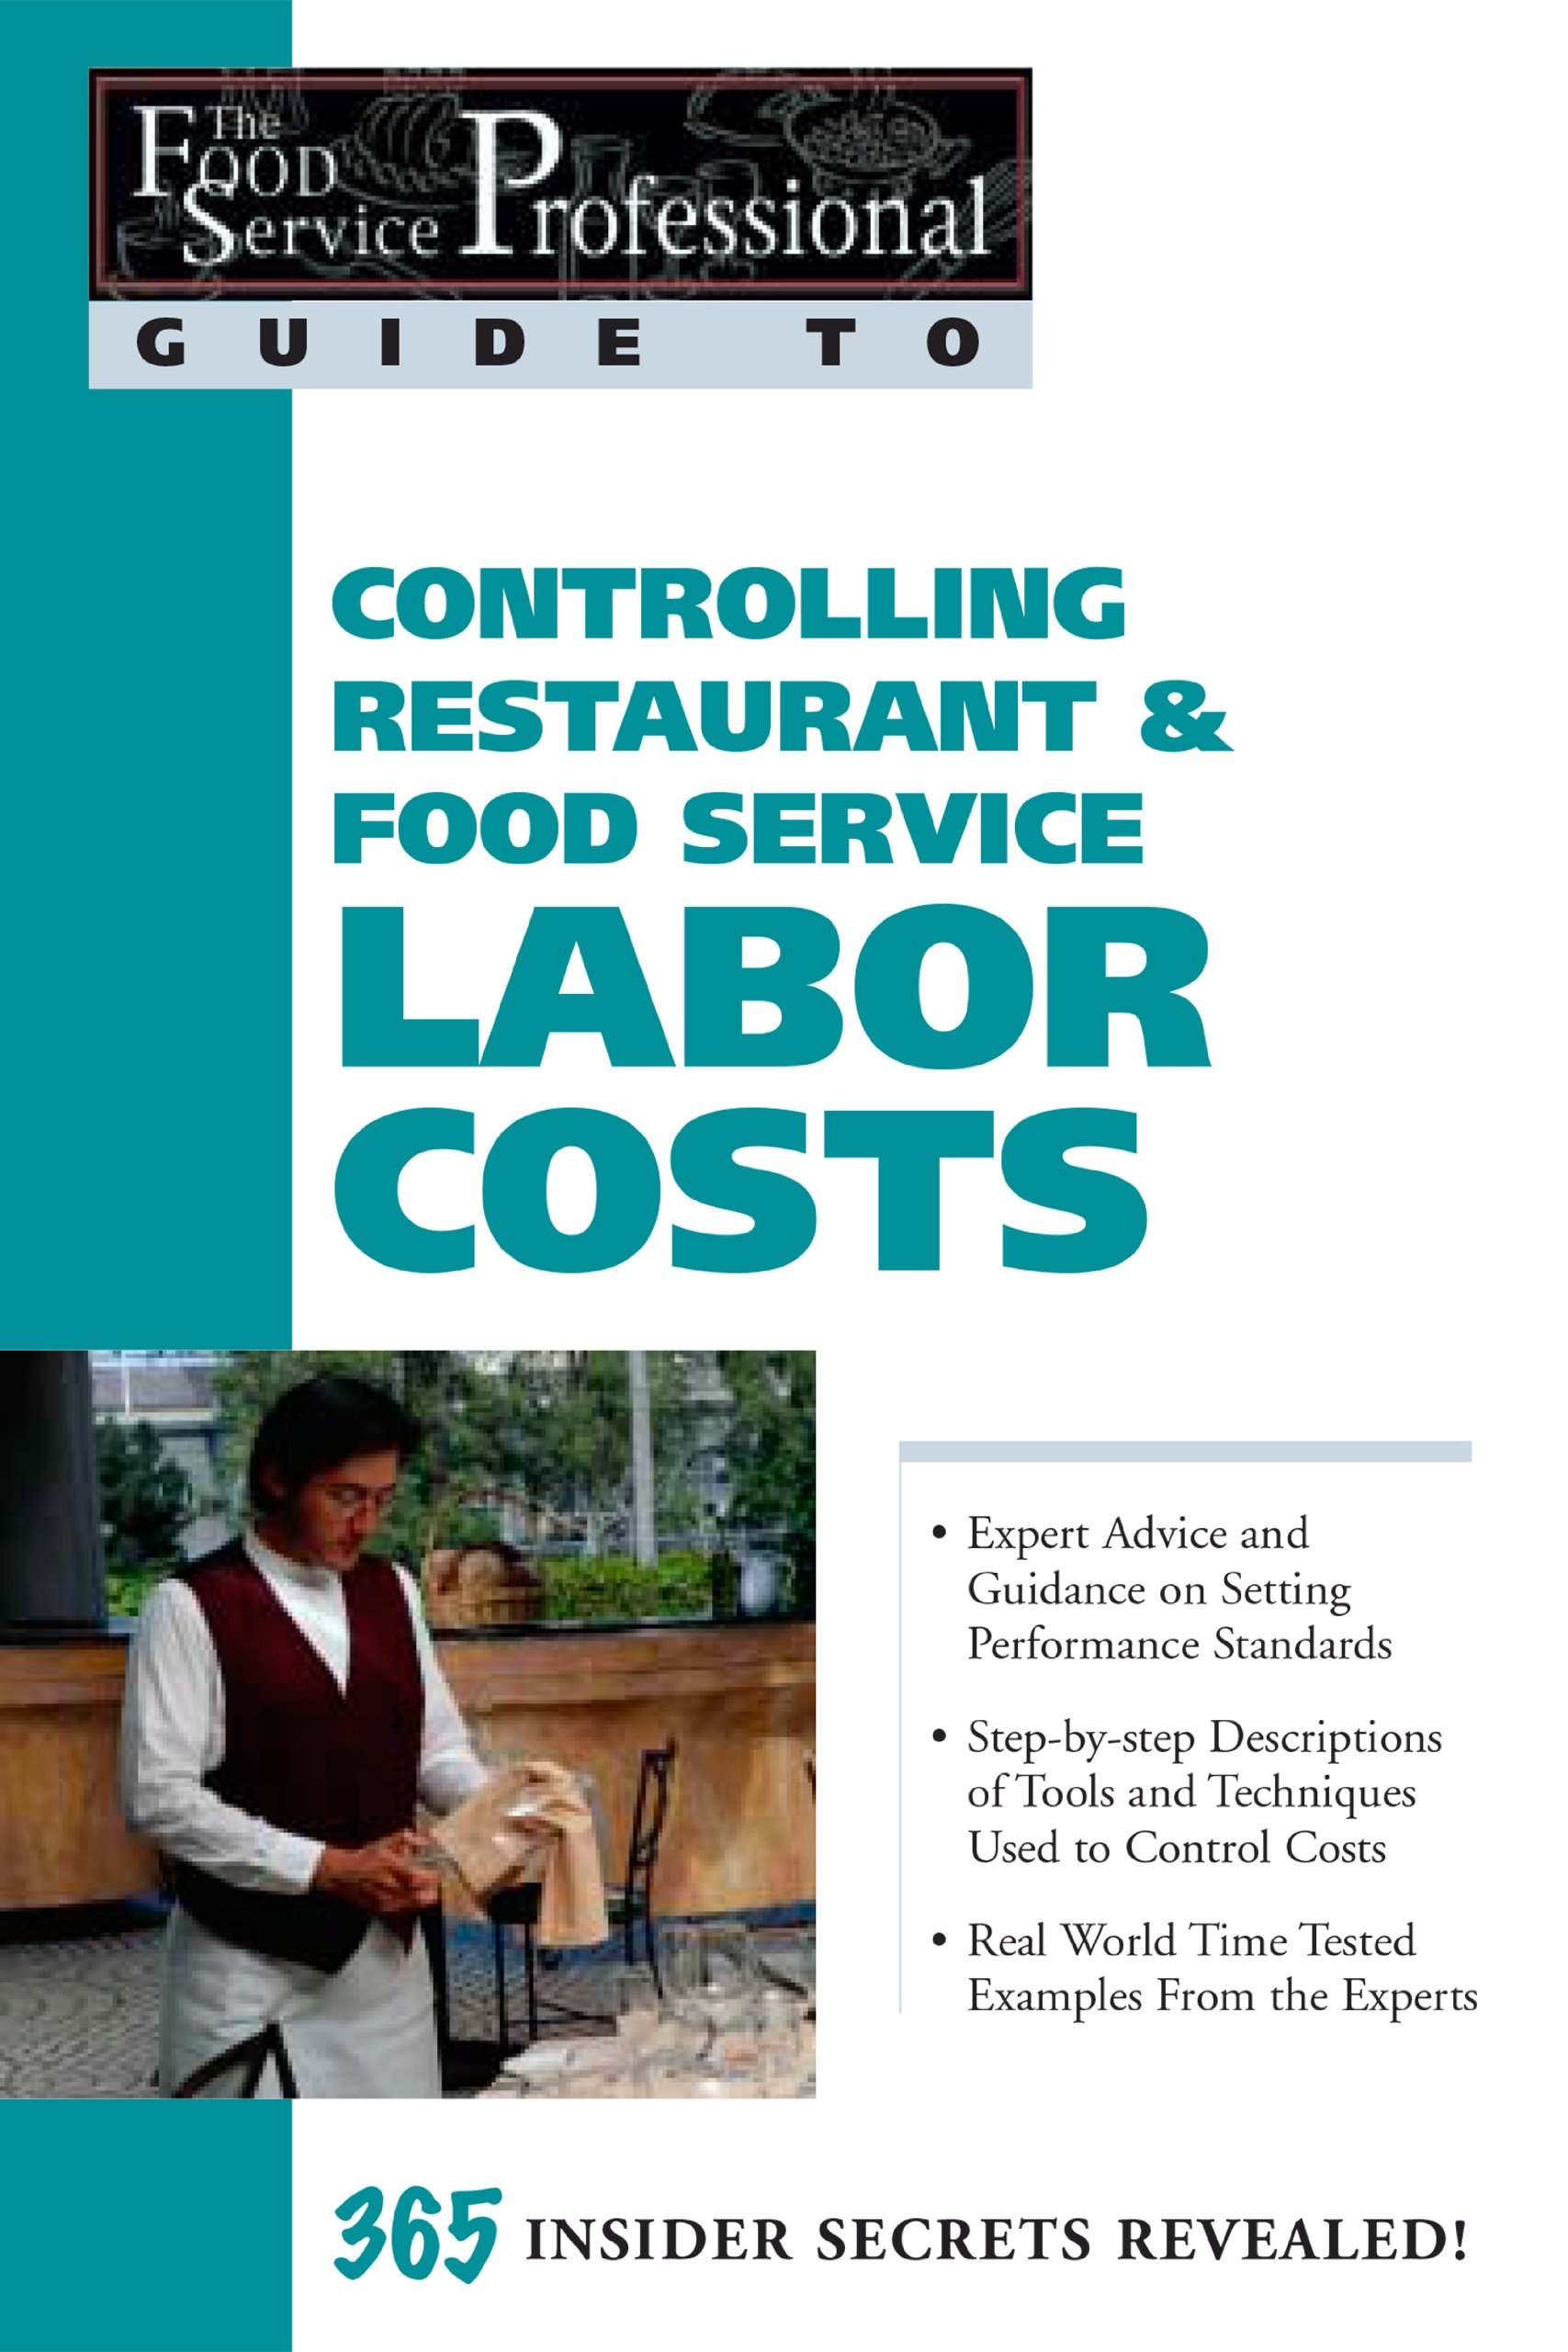 Read Online The Food Service Professionals Guide To: Controlling Restaurant & Food Service Labor Costs PDF ePub ebook